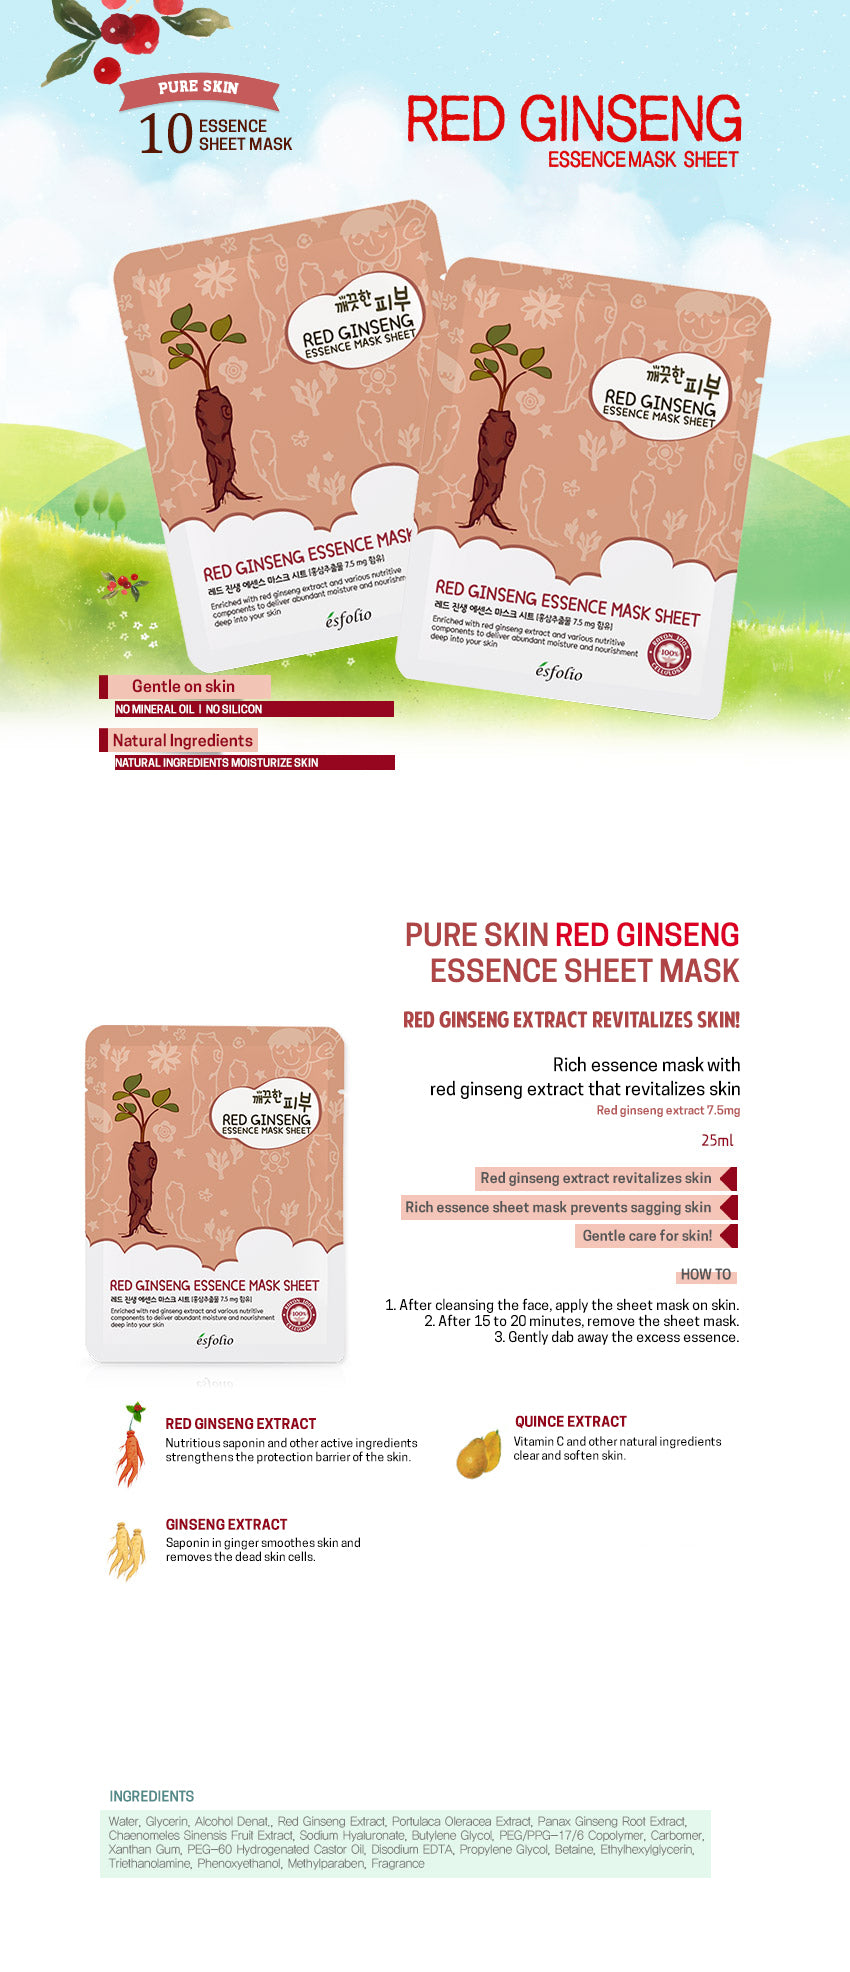 esfolio-red-ginseng-essence-mask.jpg